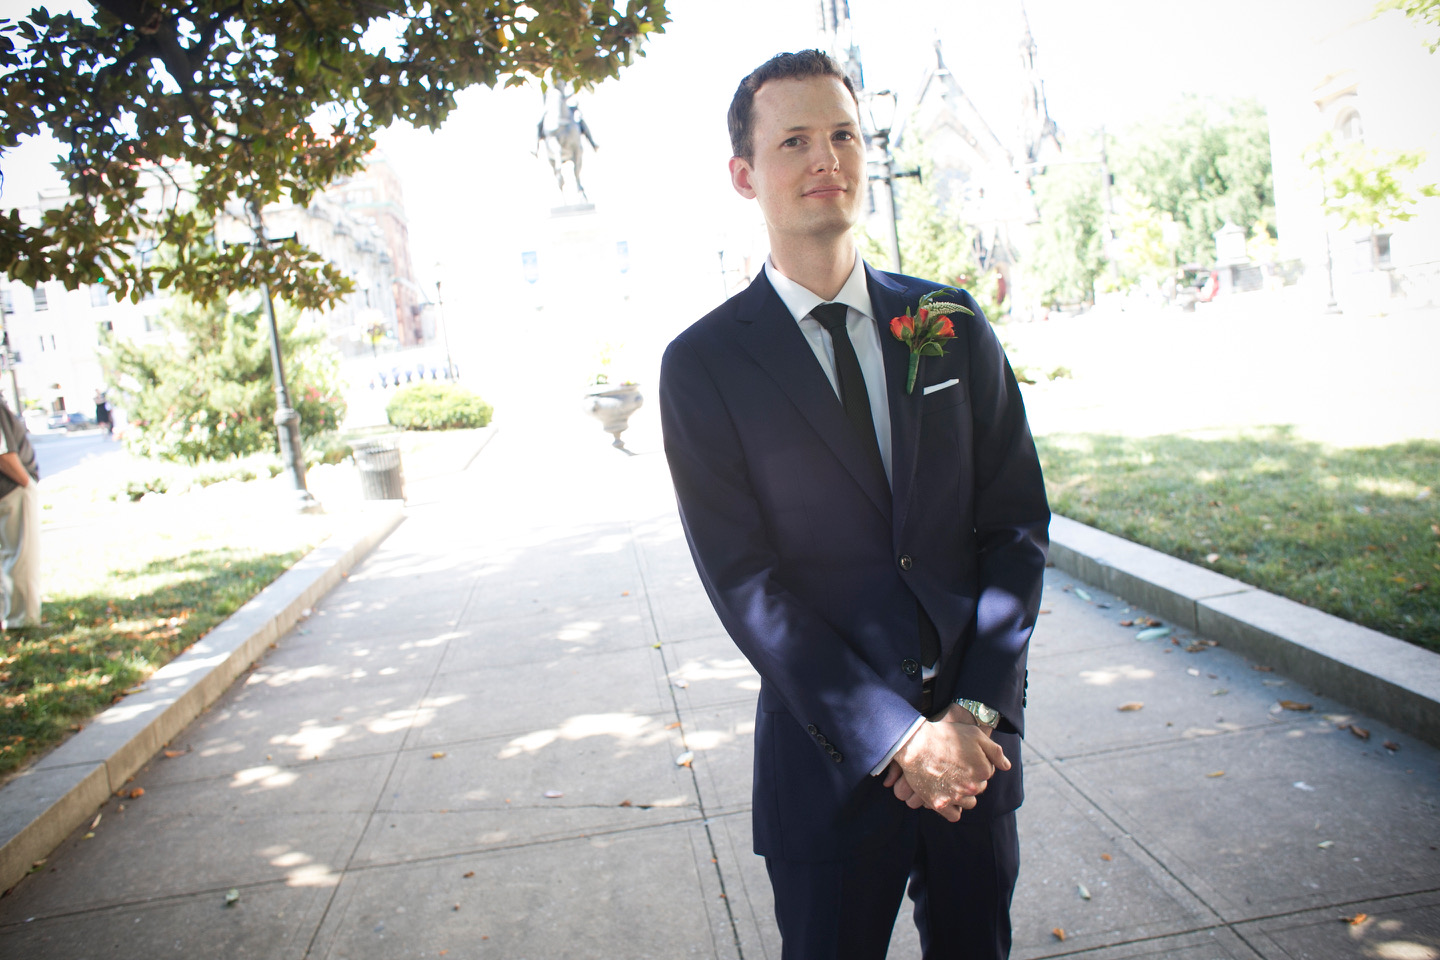 Jack C. - I got a suit for my wedding at Different Regard, and it was a great experience. I am too tall and skinny for off-the-rack suits at any store I've ever been to, but I was concerned that getting a custom suit would be too expensive...Overall, I highly recommend Different Regard. I had no idea how good I could look in the right suit, and my wife loves it too! I plan to keep wearing this suit for years to come - it's the one wedding expense that was really worth it!